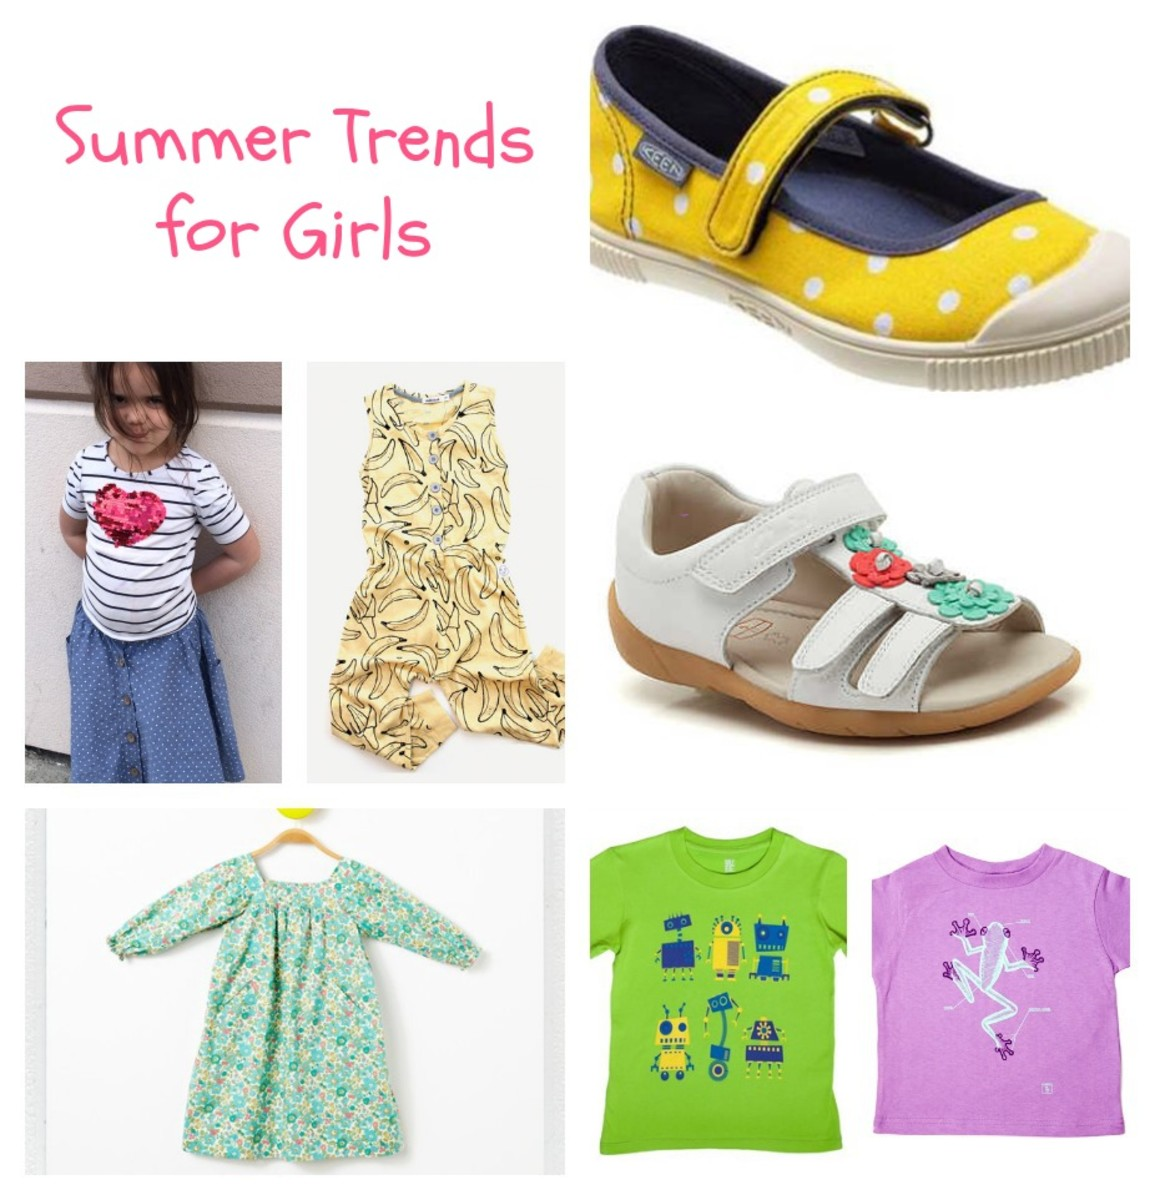 Summer Trends for Girls